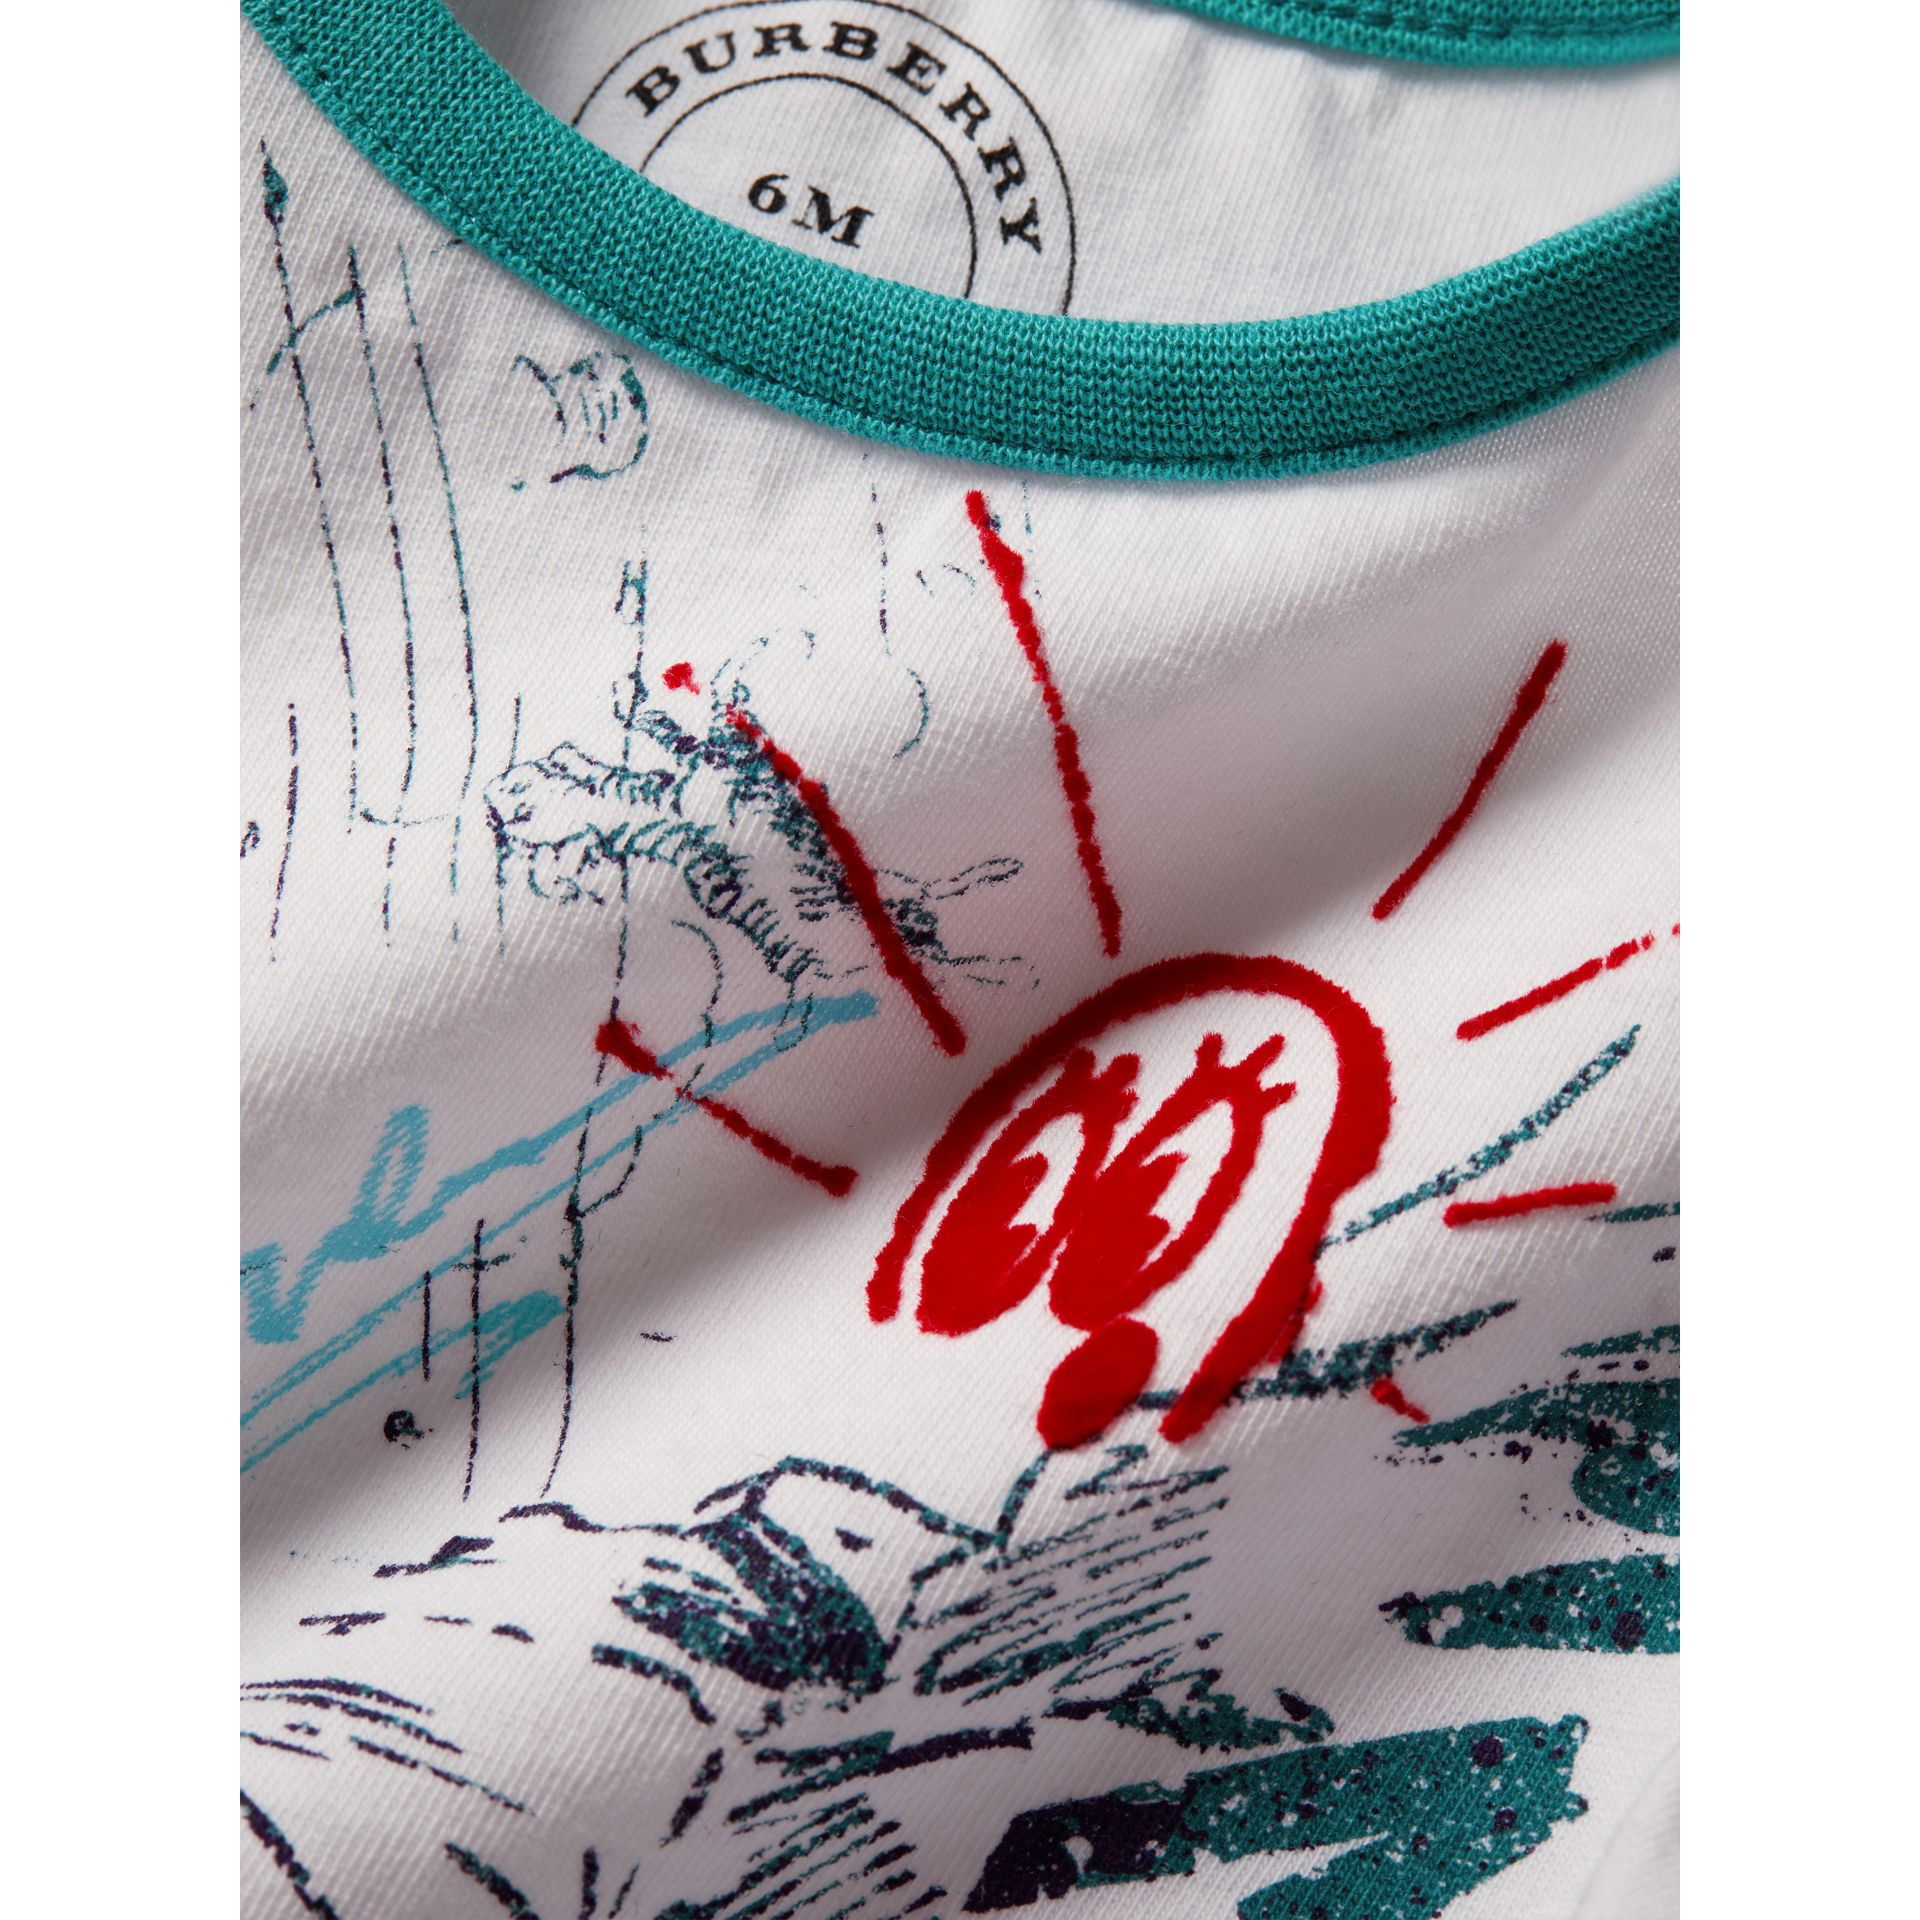 Adventure Motif Cotton T-shirt in White | Burberry - gallery image 1